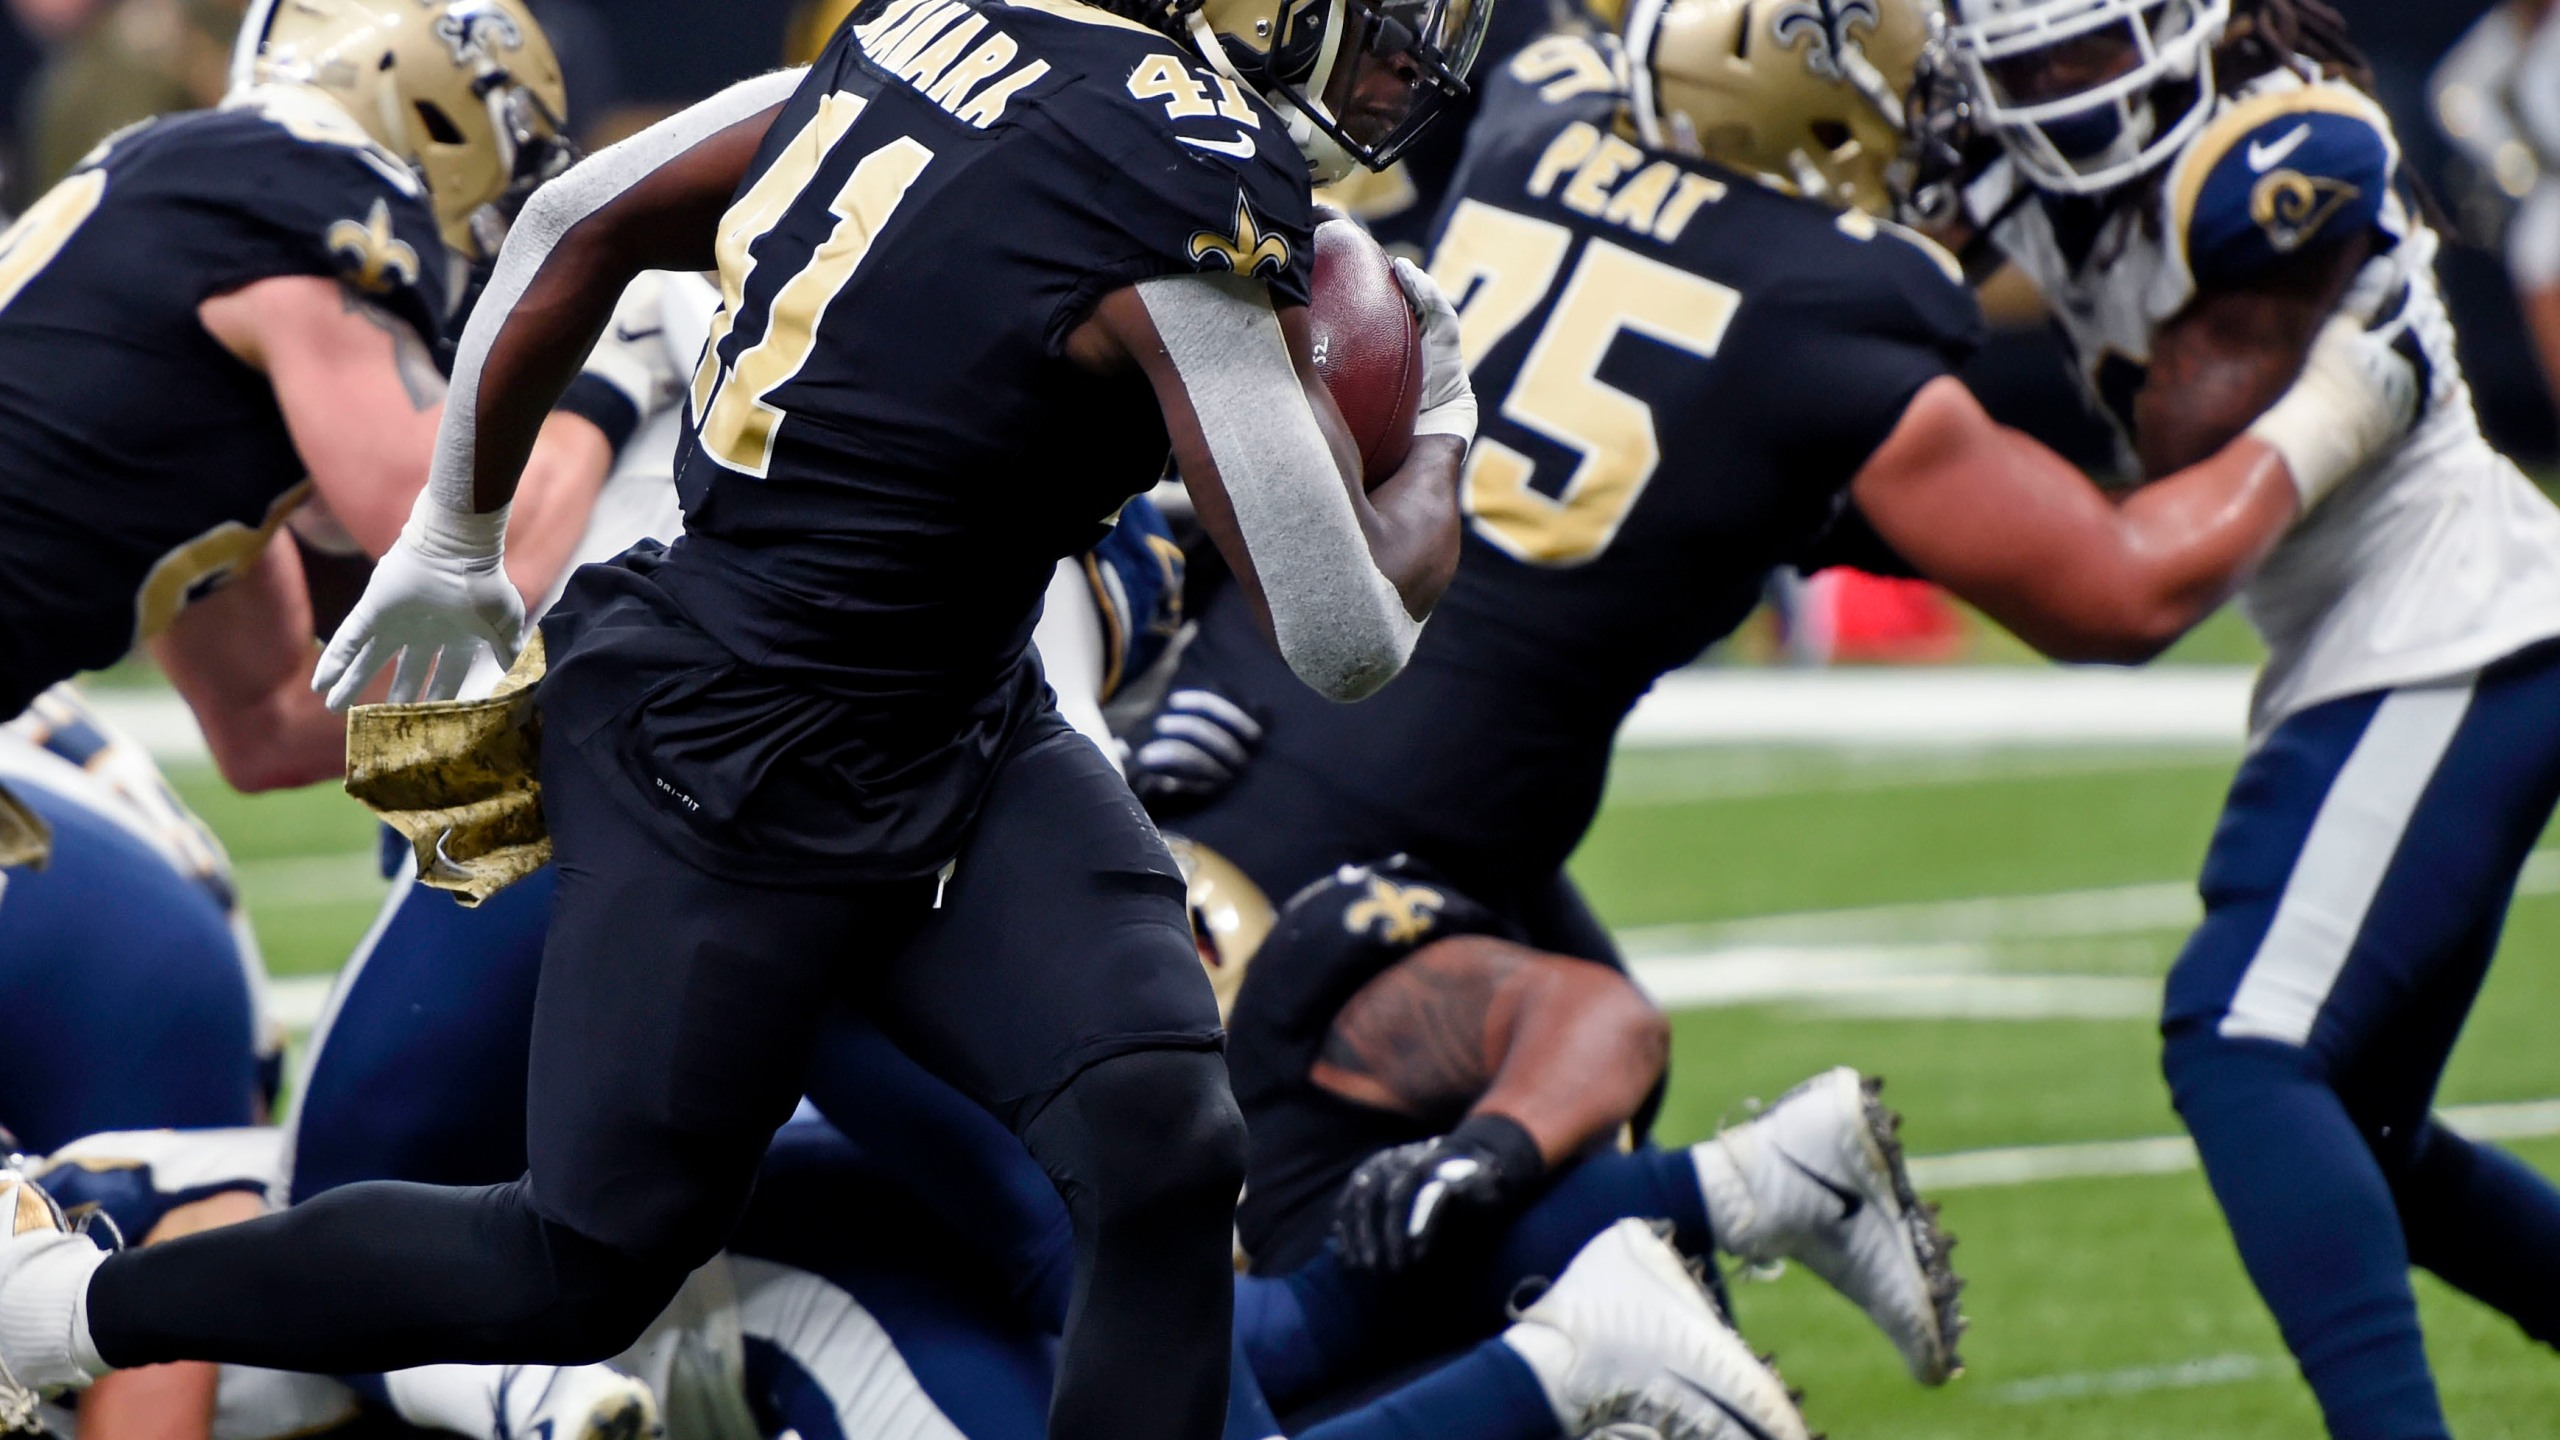 Rams_Saints_Football_06811-159532.jpg98421100